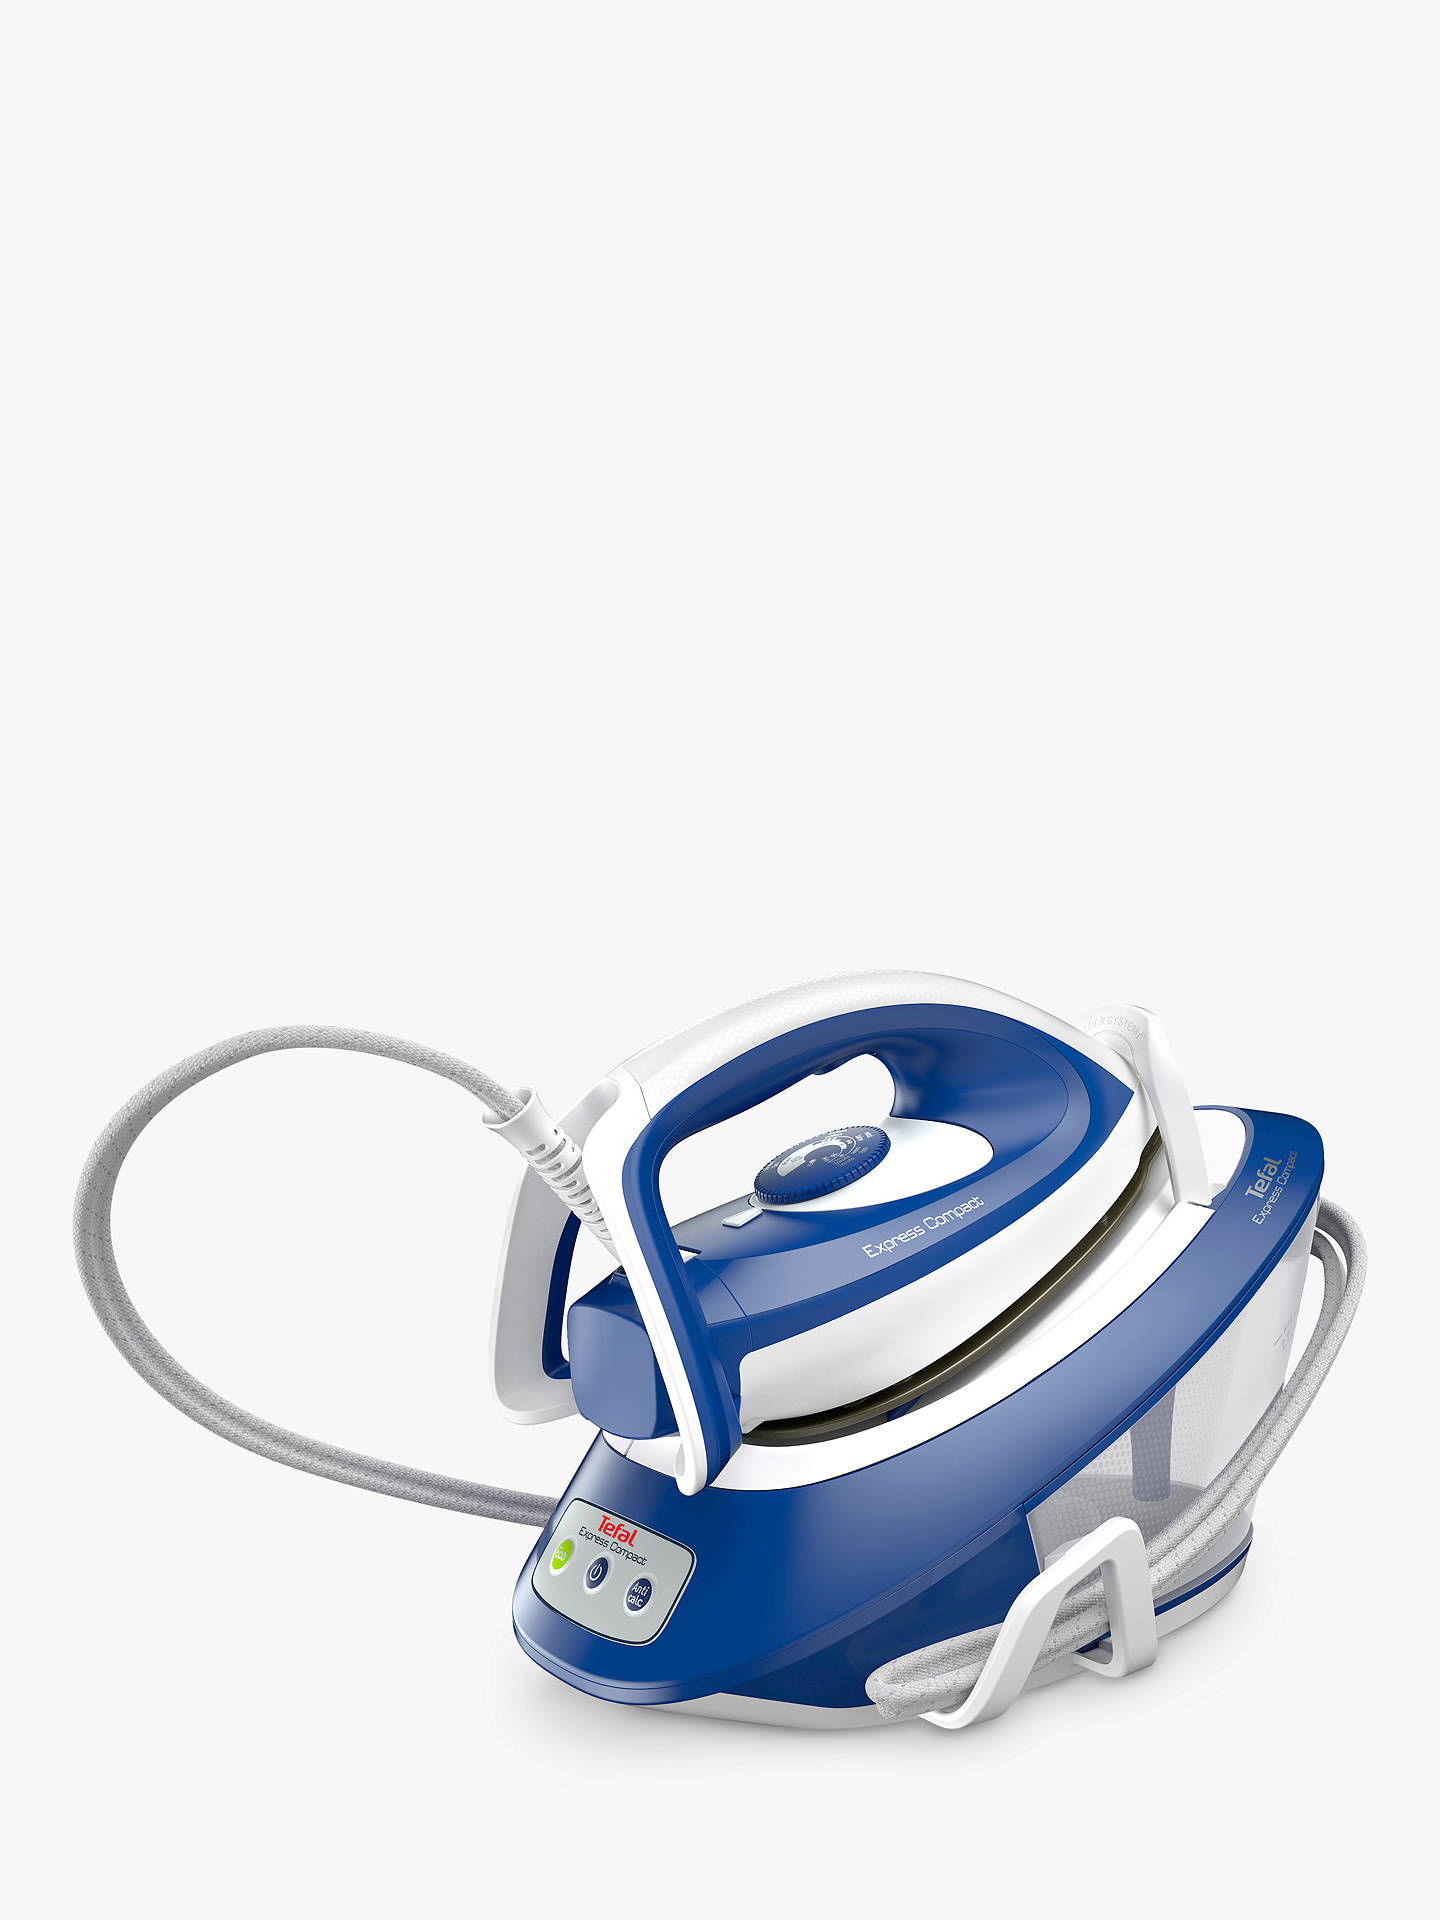 Buy Tefal SV7112 Steam Generator Iron, Blue Online at johnlewis.com